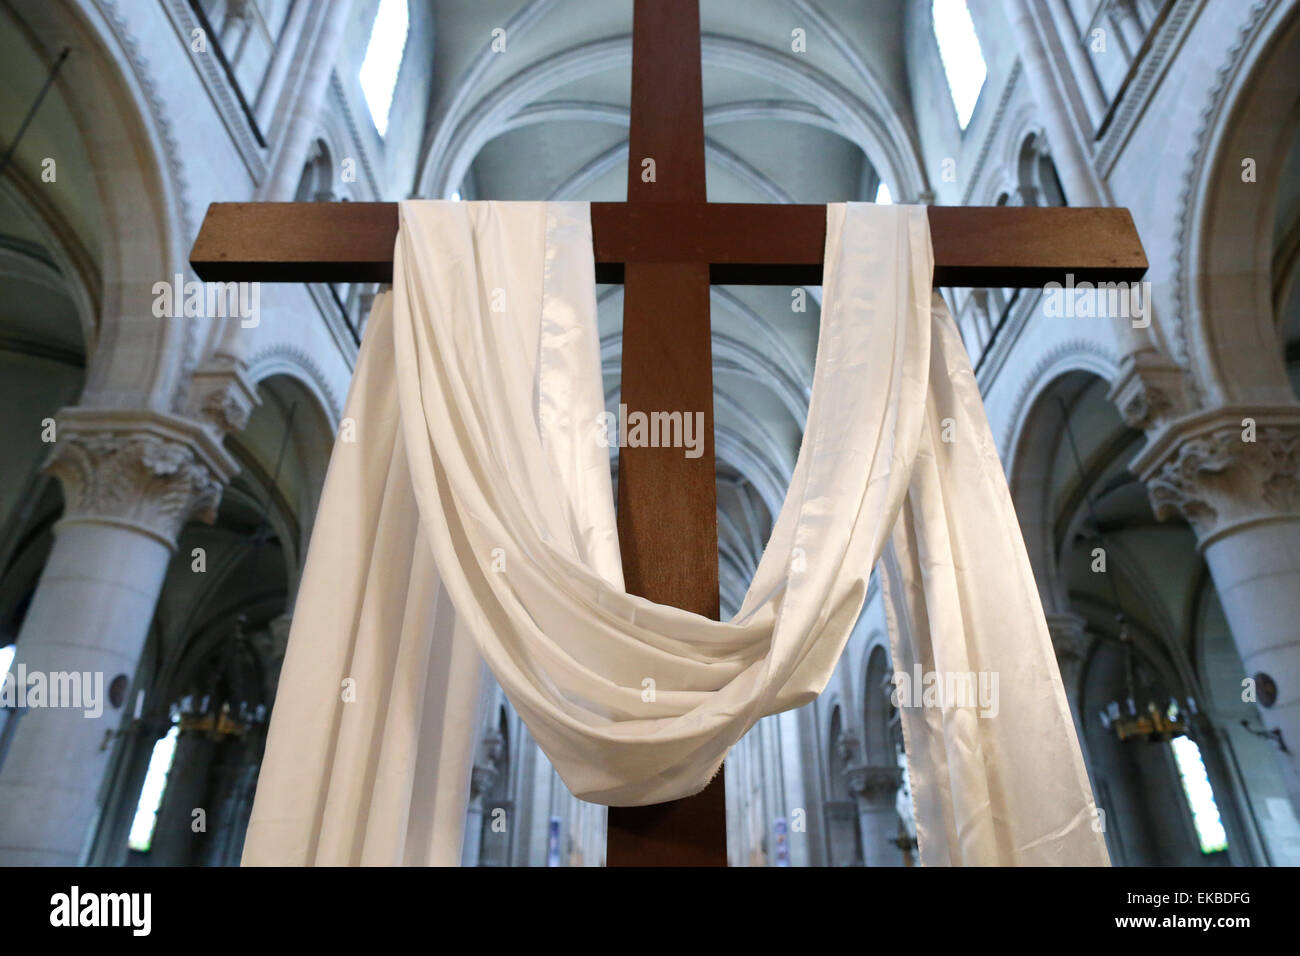 the cross and the white cloth symbolize the resurrection of jesus